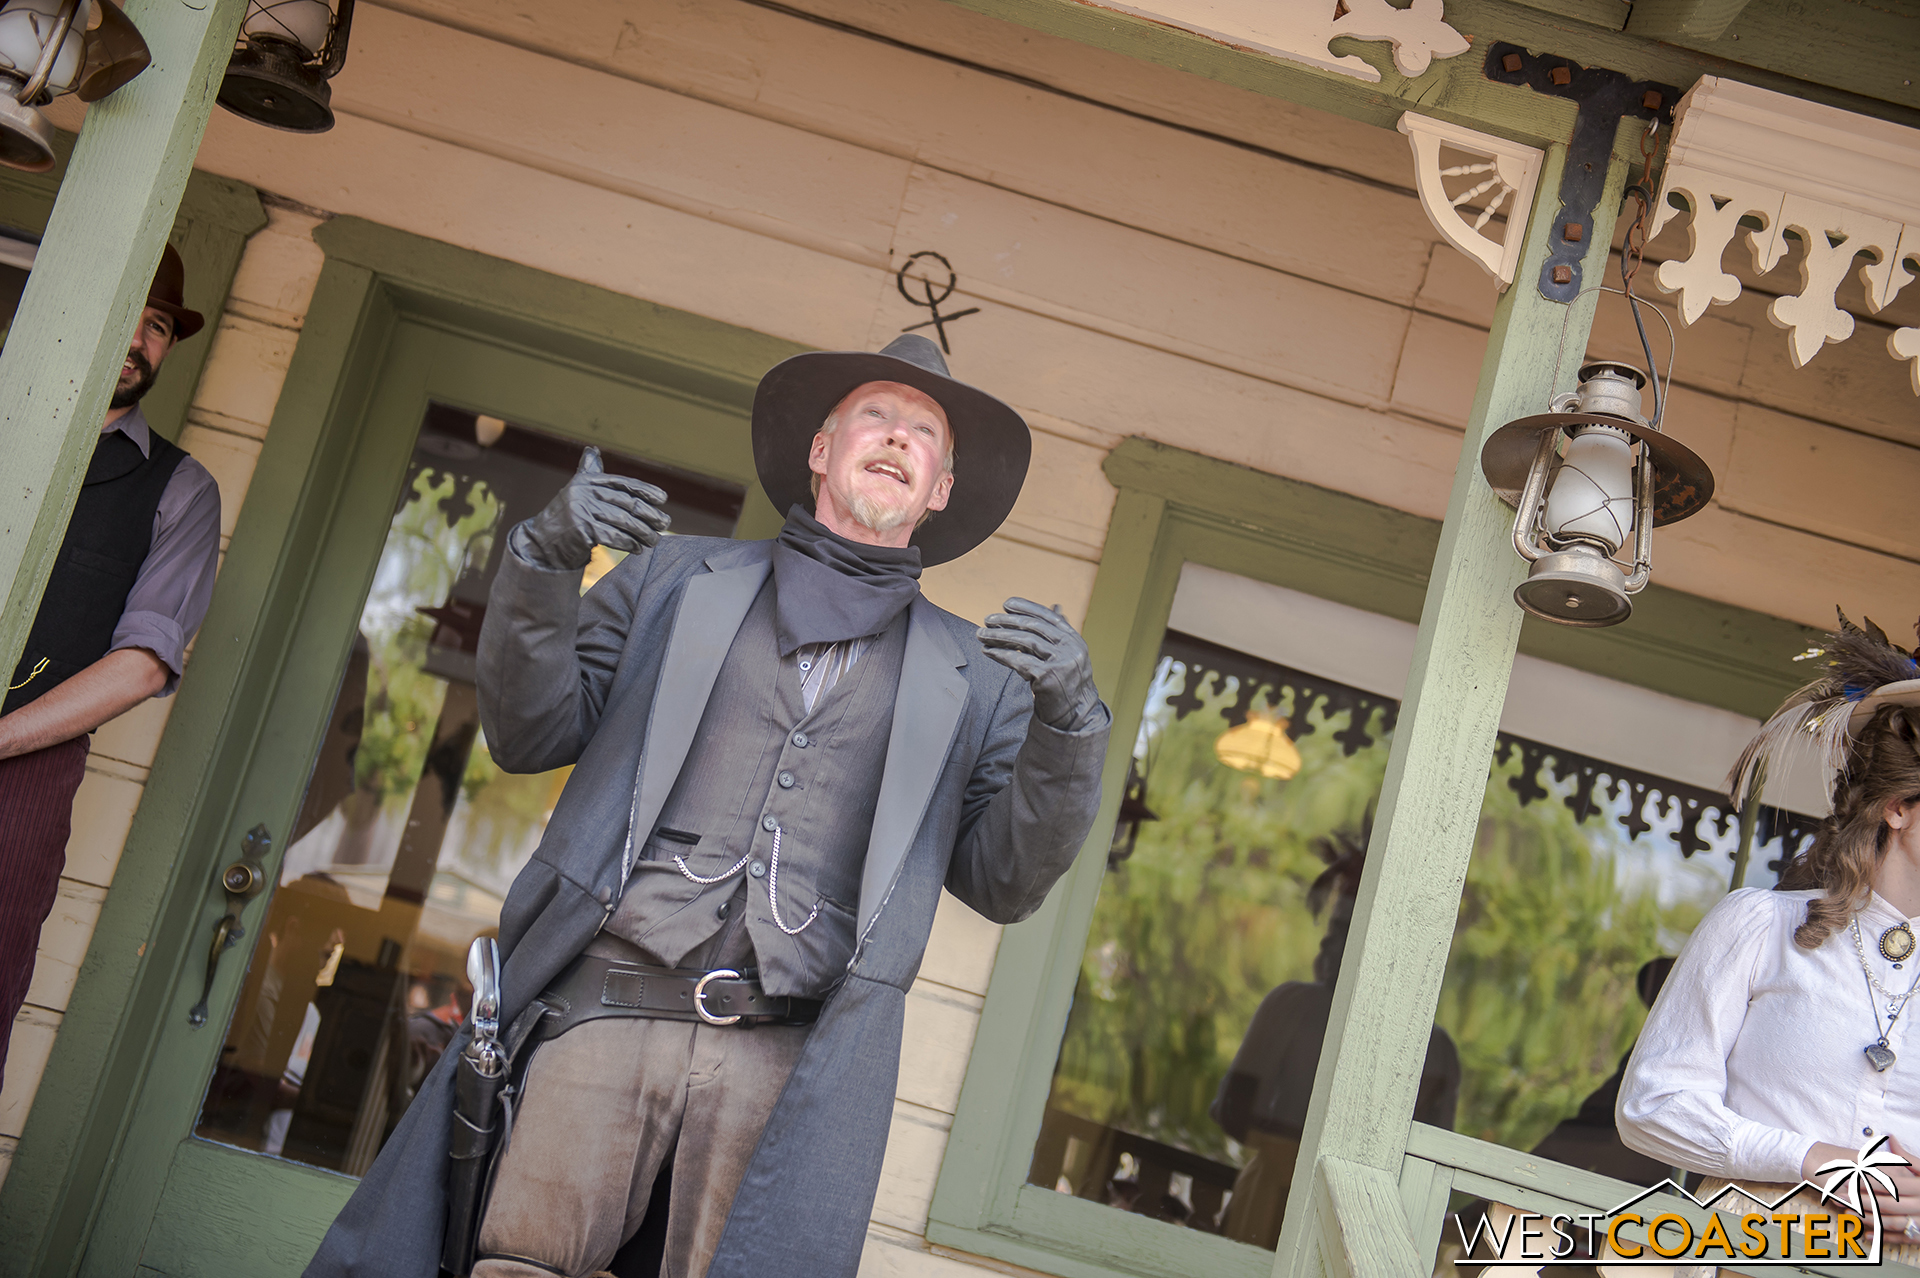 Clay recounts the events of Ghost Town Alive! season 2, ultimately reasoning that with all the arrests and non-appearances of various Mayfield members, the line of rightful inheritance of the deed ultimately falls onto him.